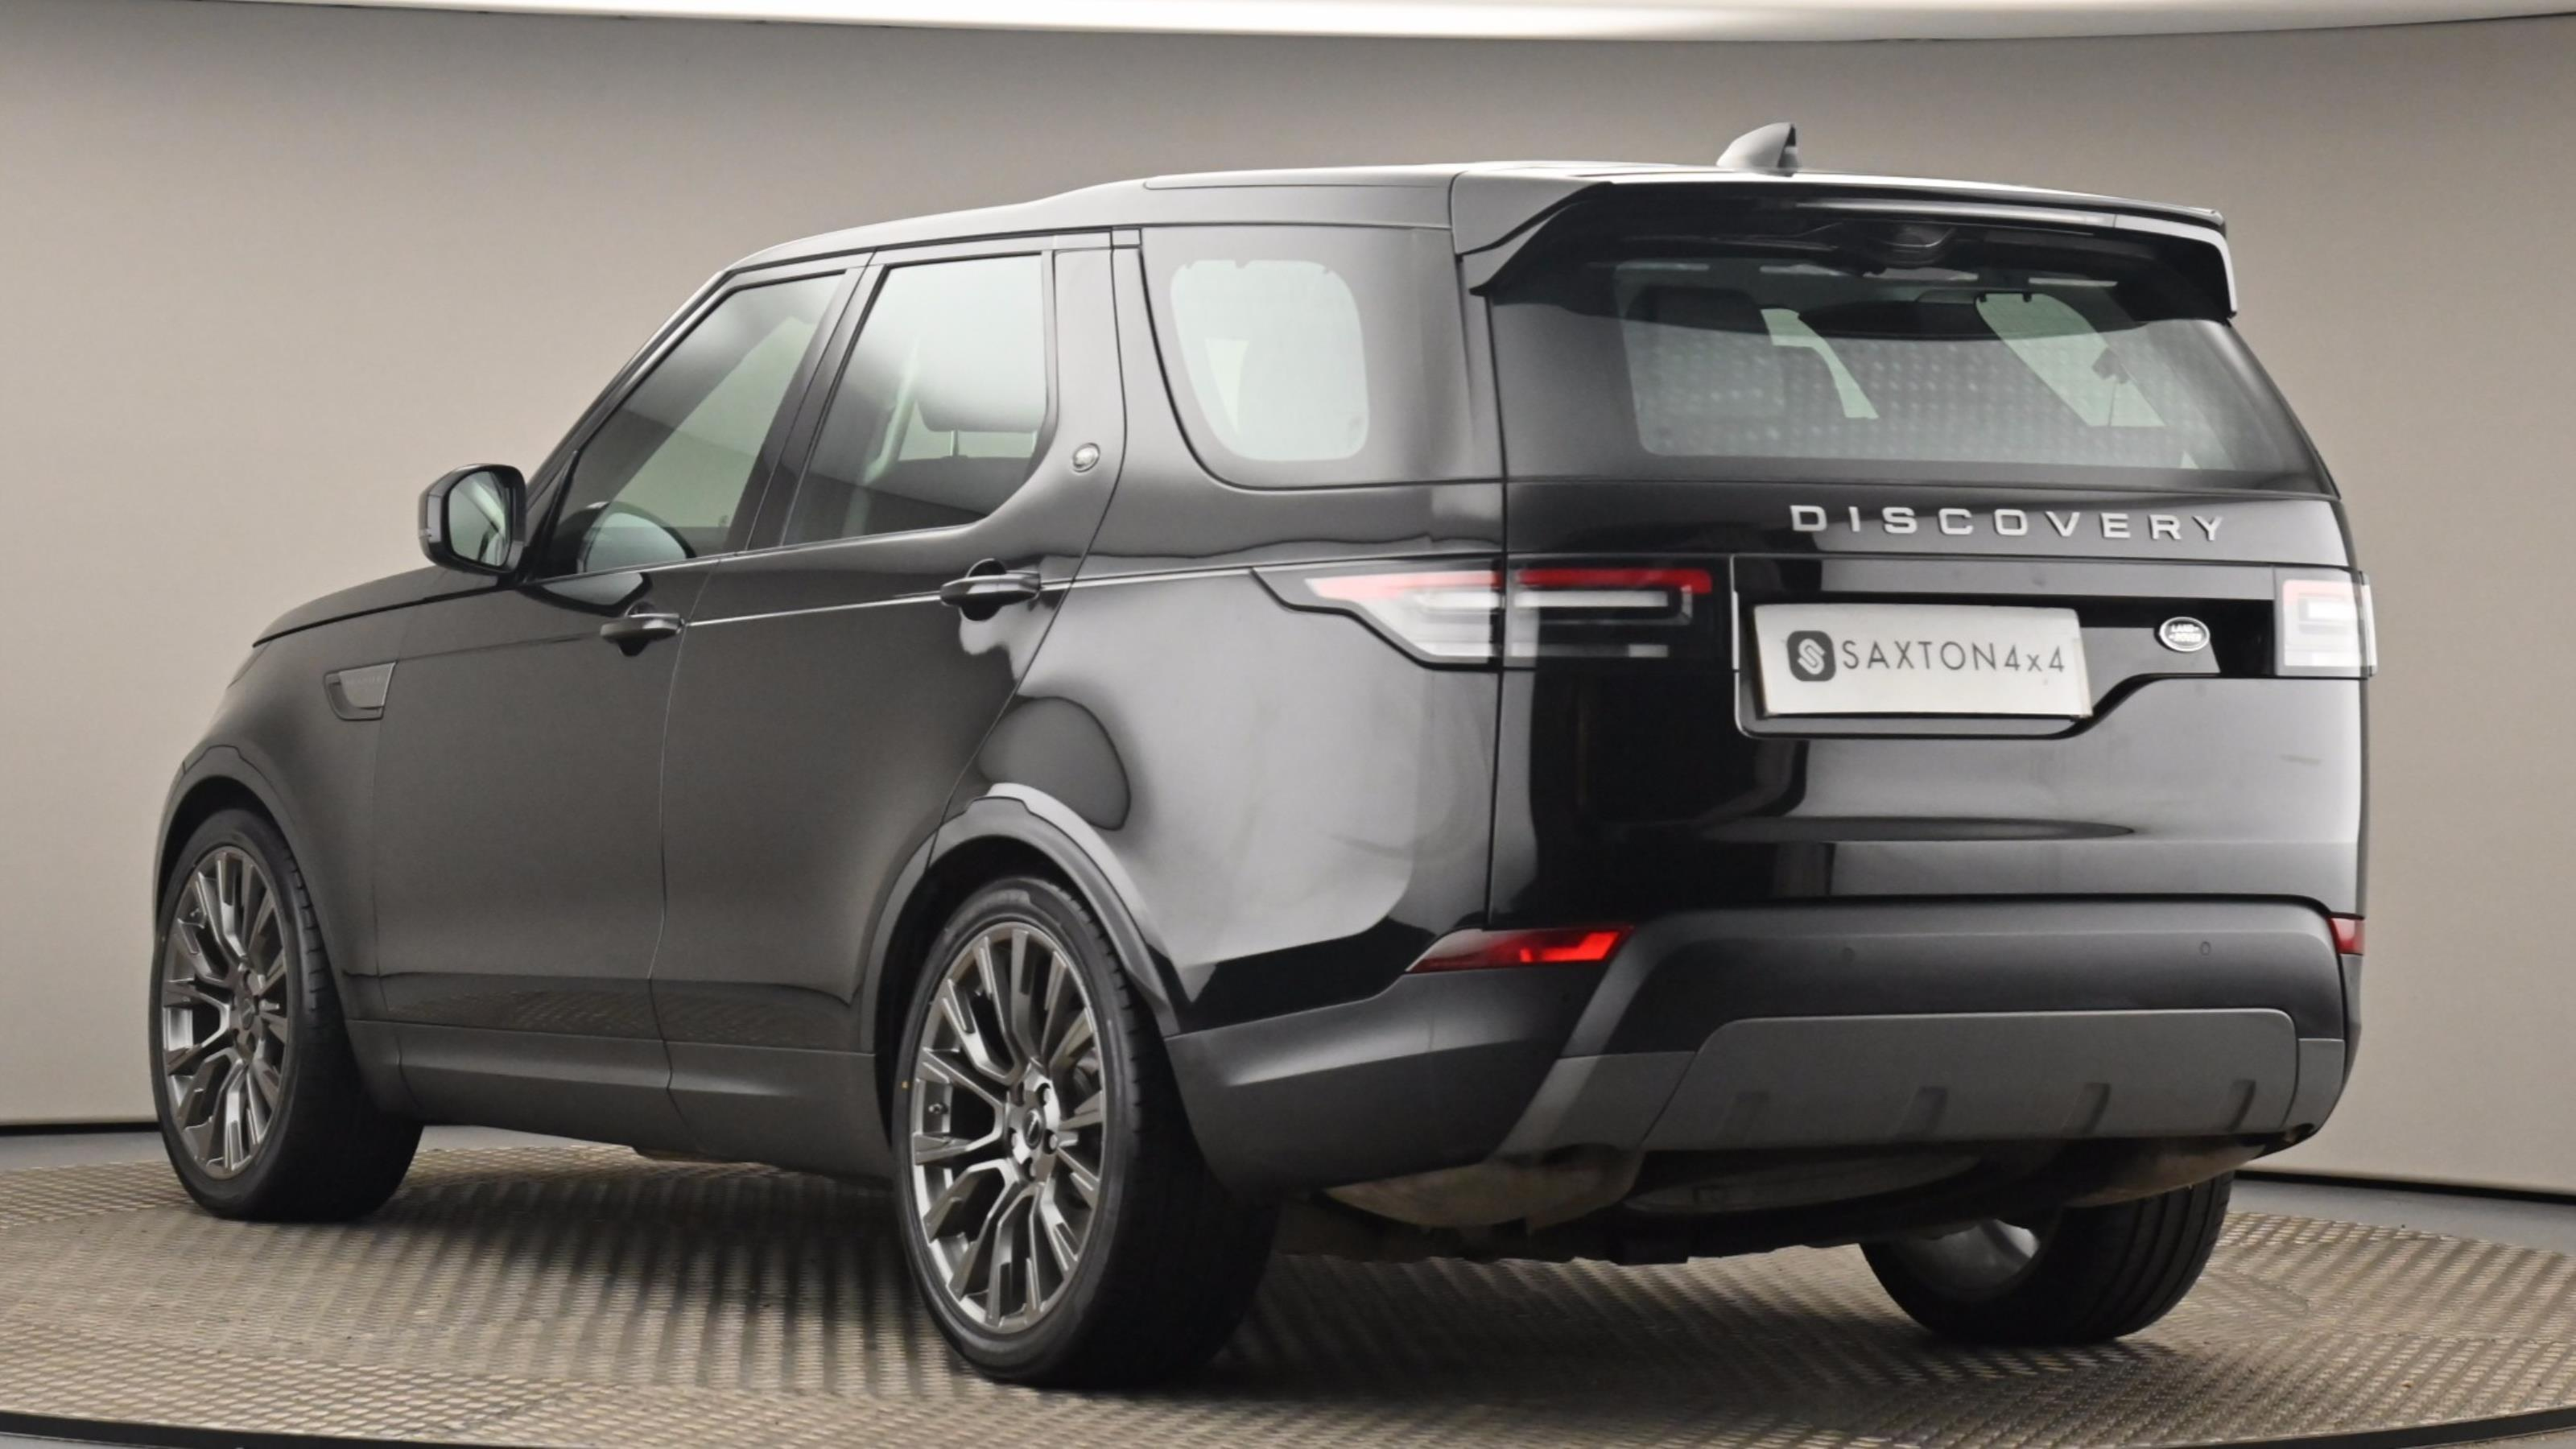 Used 2017 Land Rover DISCOVERY 3.0 TD6 SE 5dr Auto BLACK at Saxton4x4